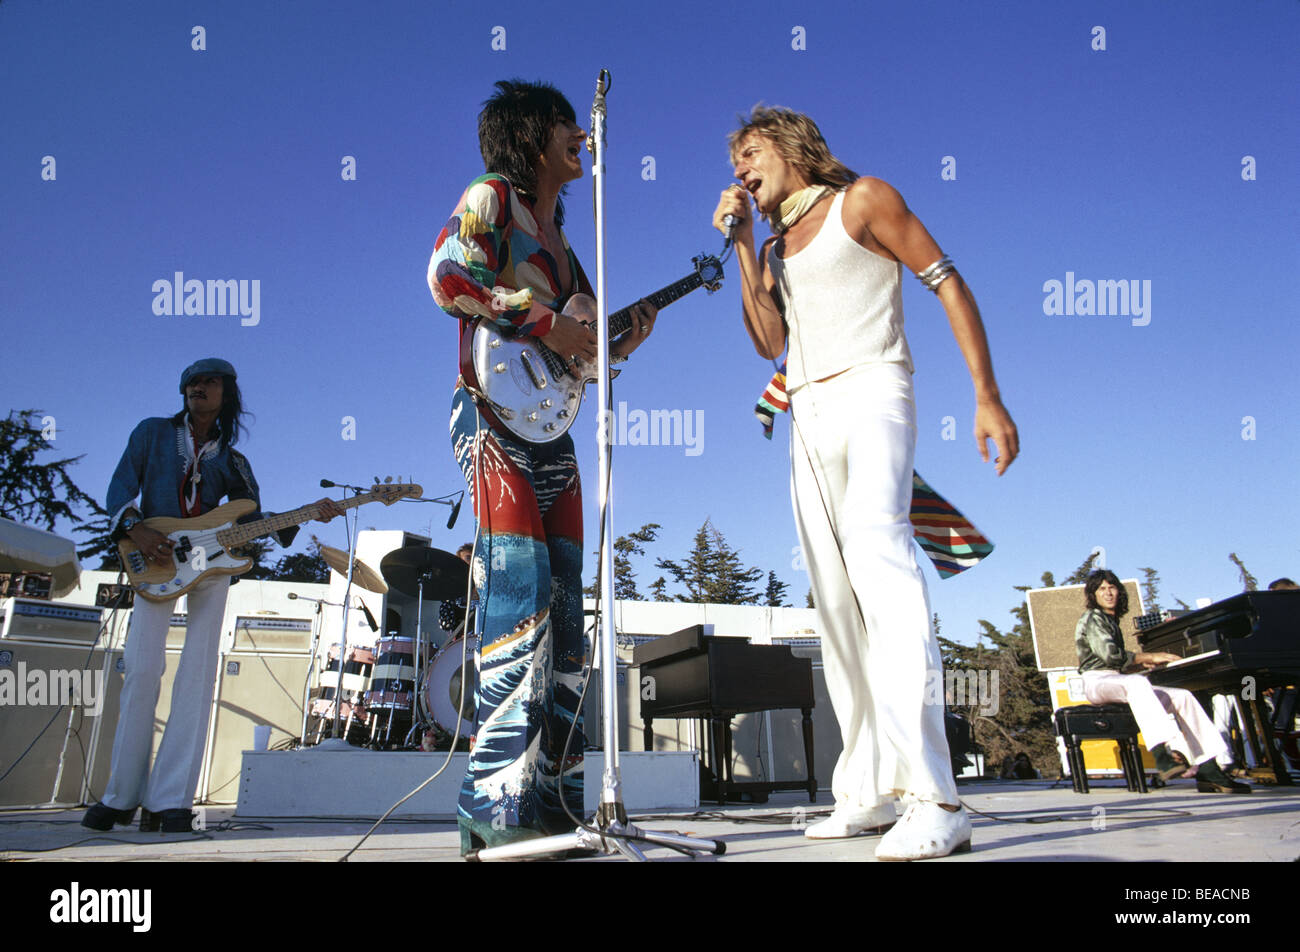 ROD STEWART AND THE FACES in Los Angeles in October 1973. Ronnie Wood duets with Rod. - Stock Image